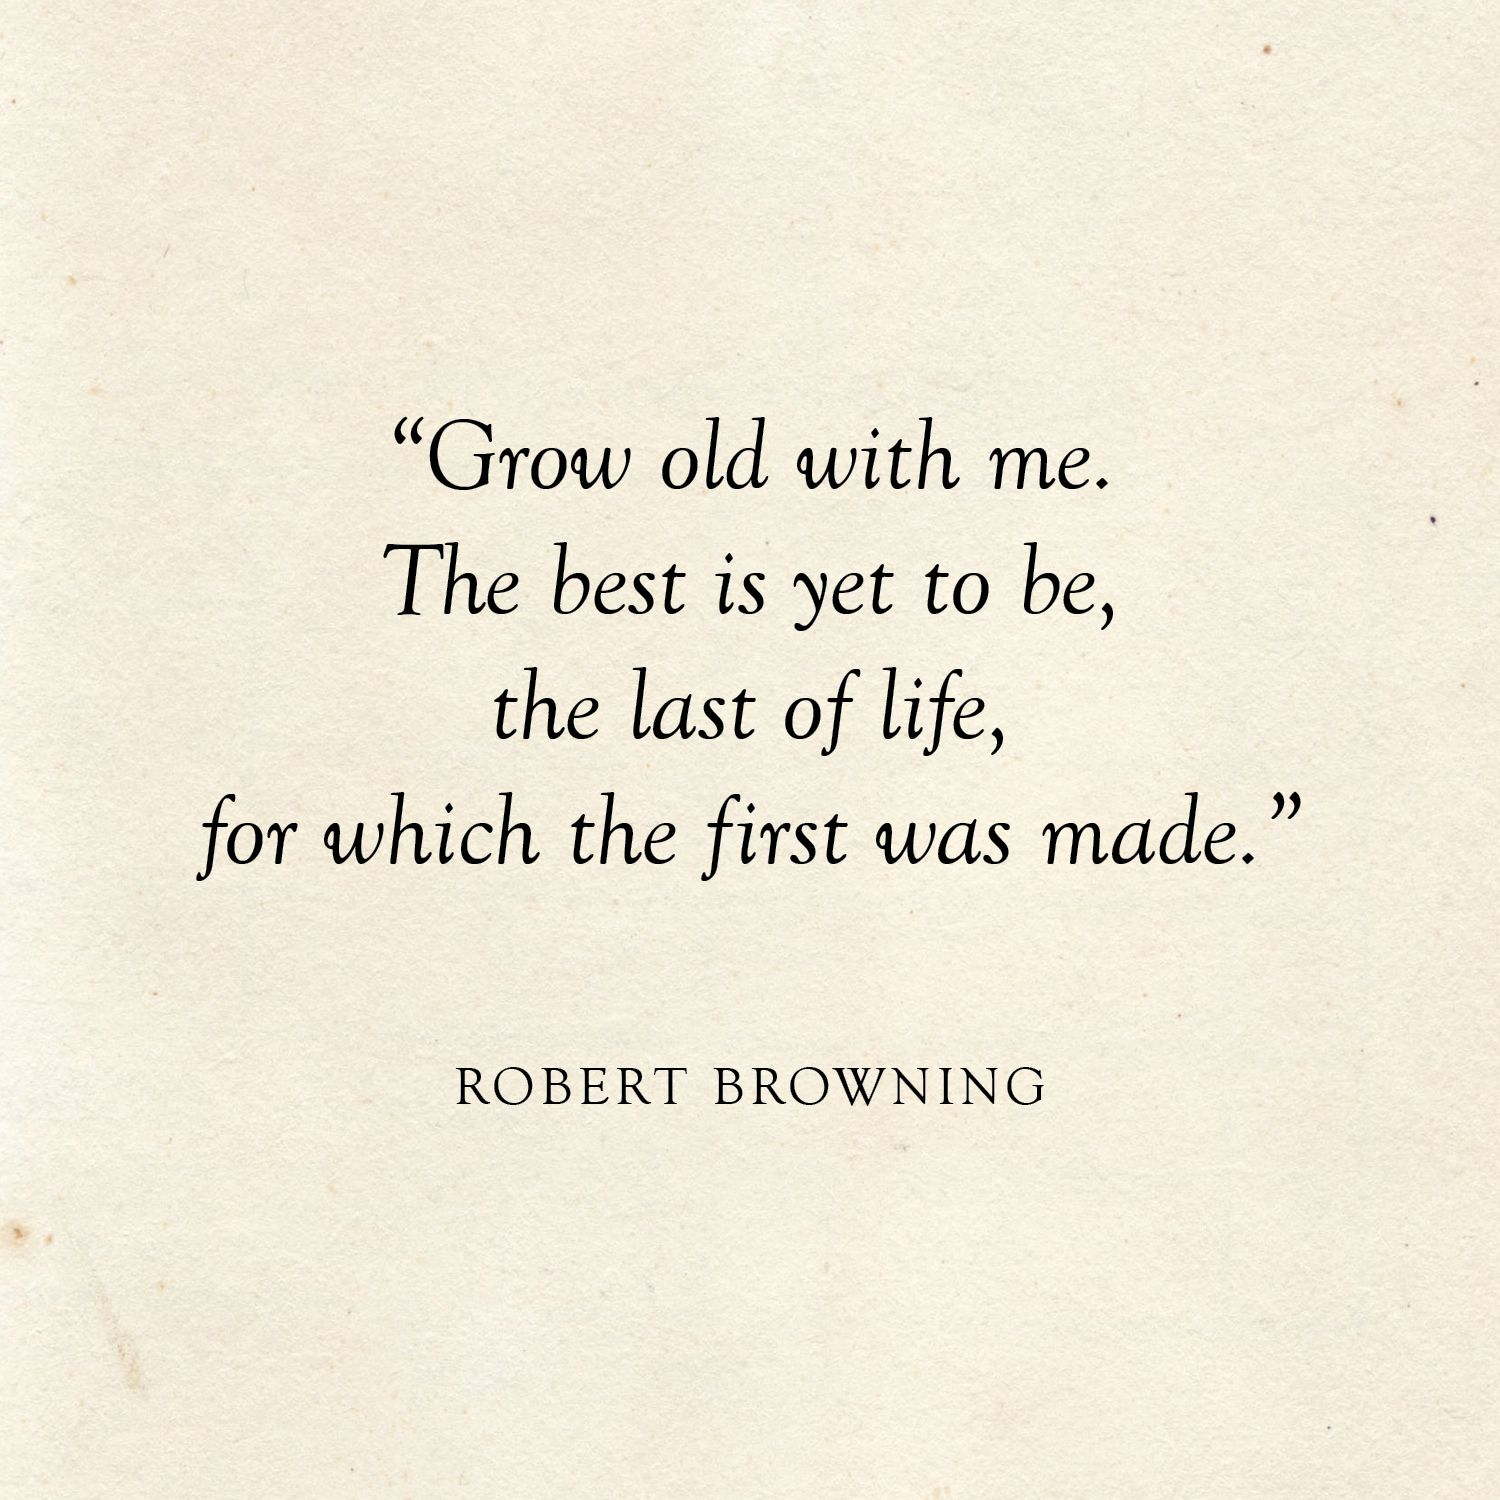 25 Literary Love Quotes Posted Fete Literary Love Quotes Vintage Love Quotes Love Quotes For Wedding